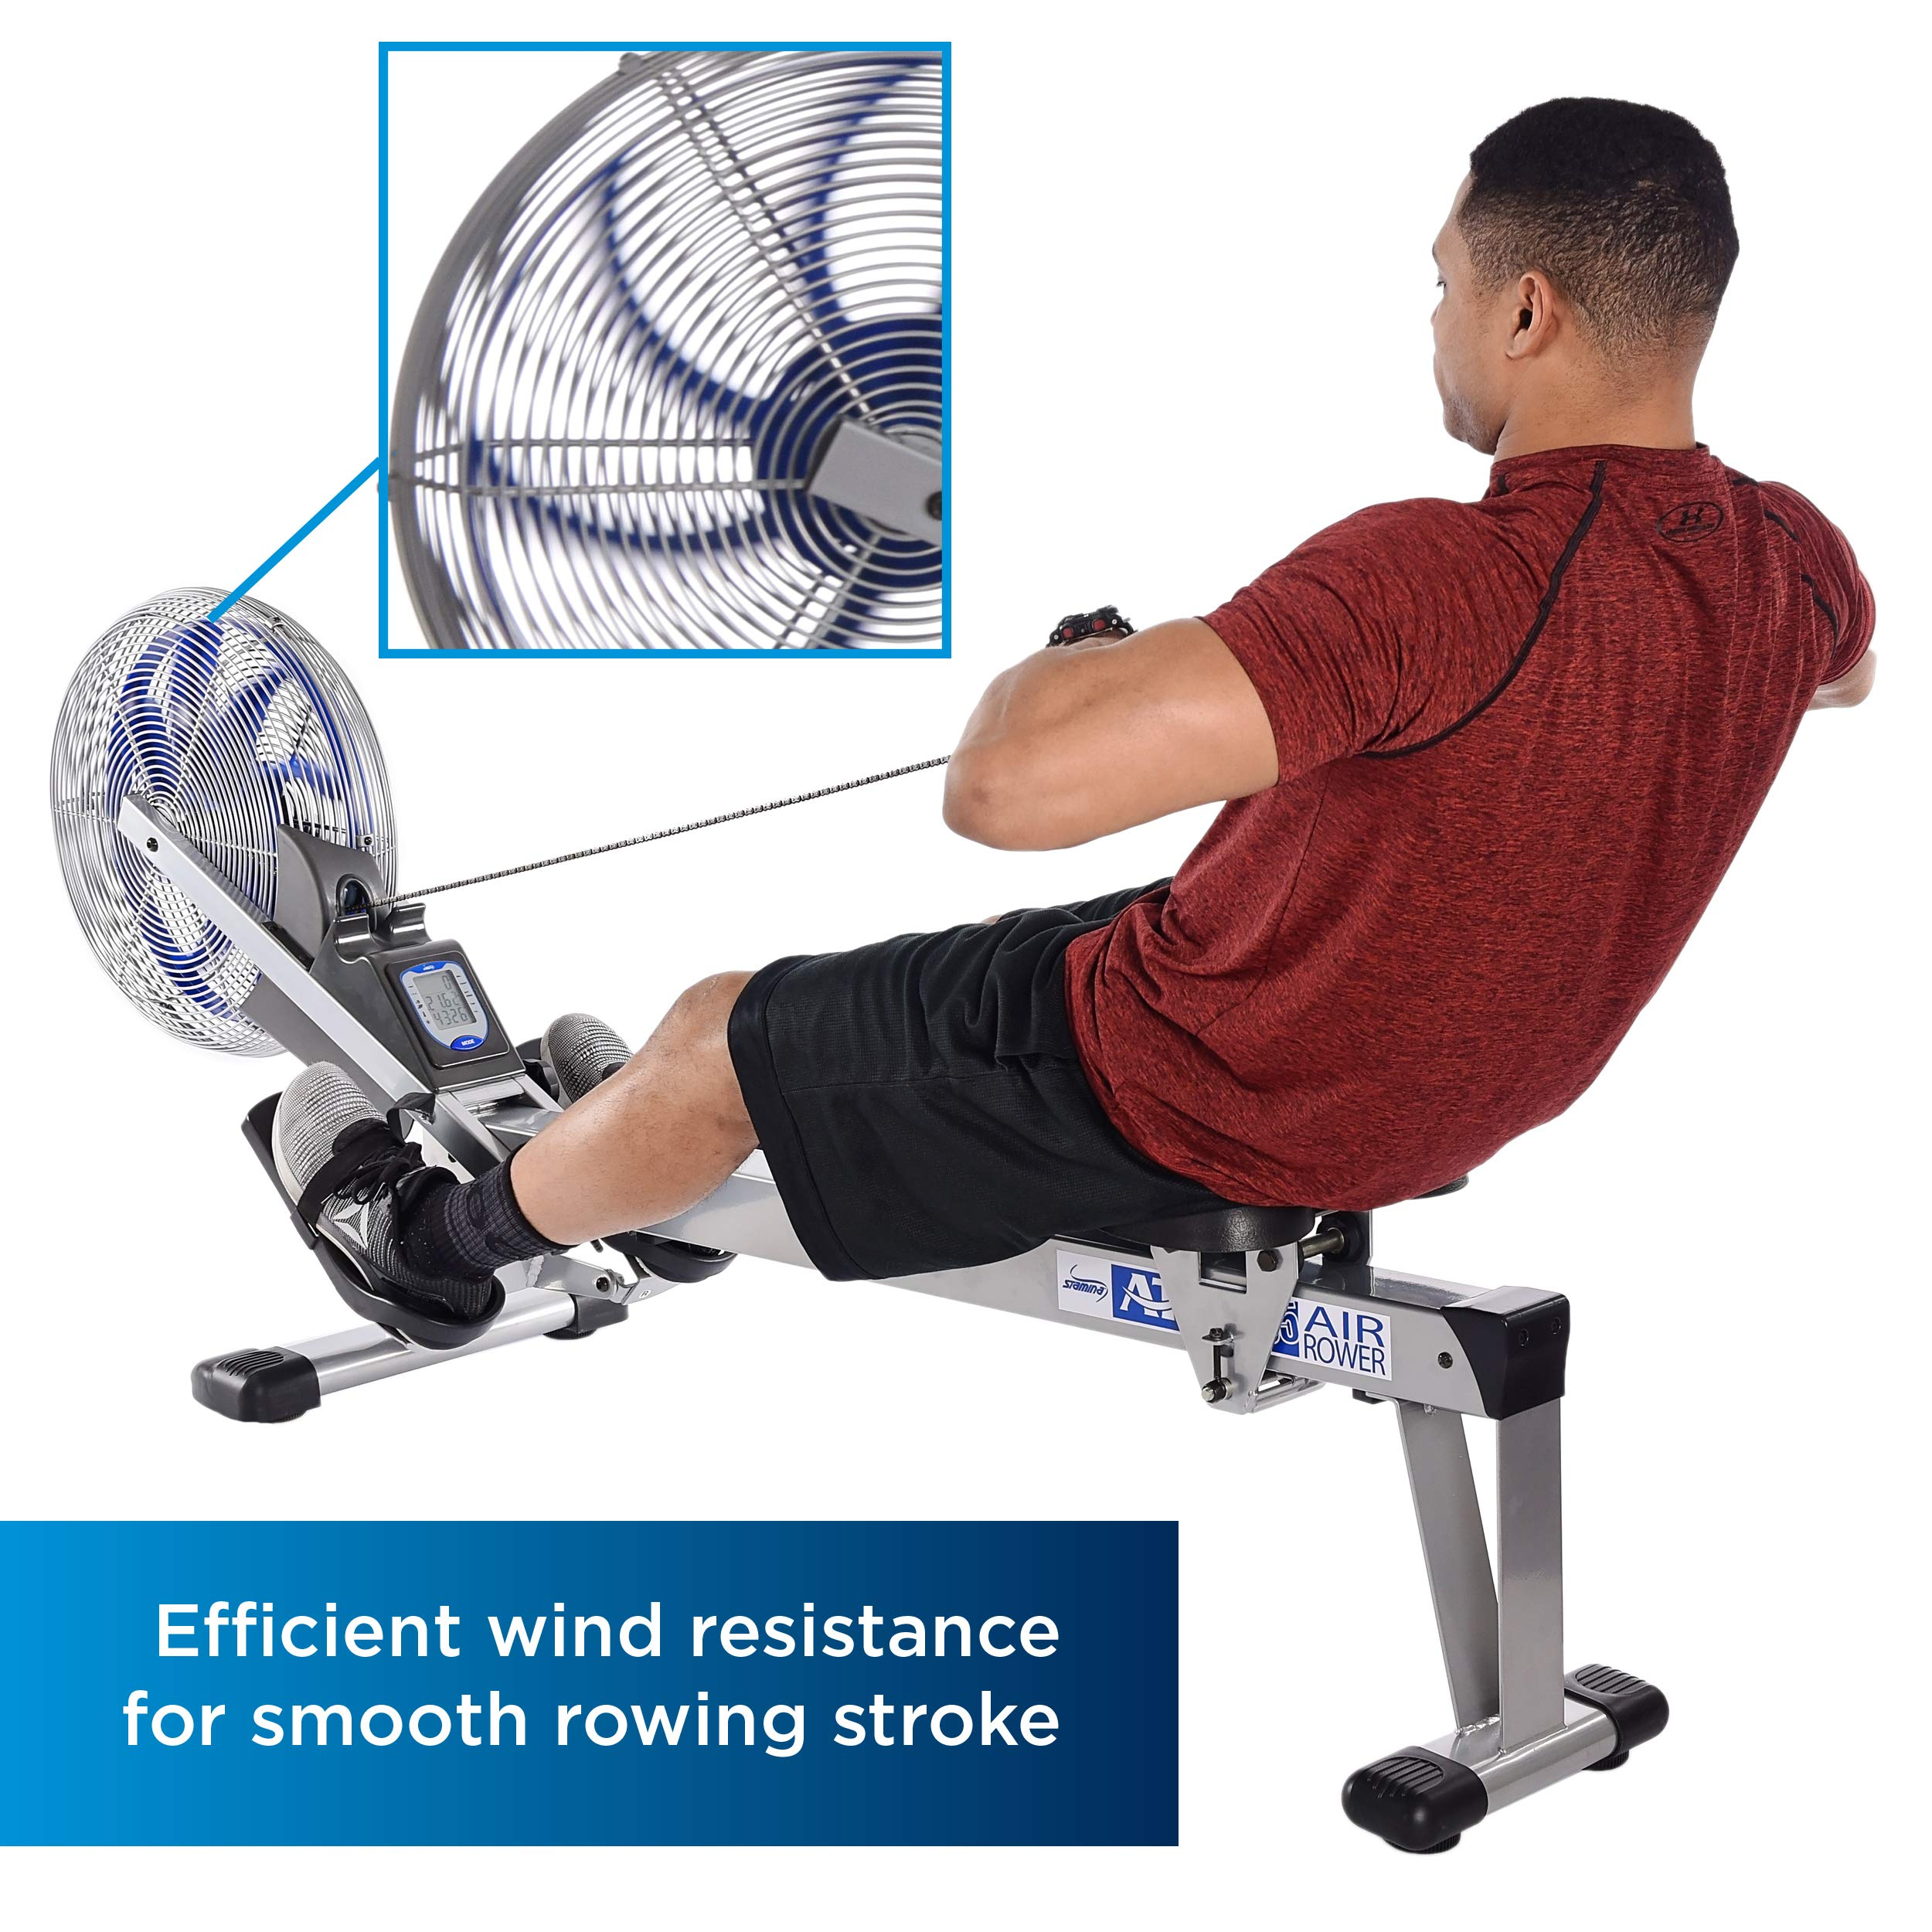 Stamina 35-1405 ATS Air Rower 1405 Rowing Machine, Air Resistance, LCD Fitness Monitor, Folding and Built-in Wheels, Chrome/Blue/Black by Stamina (Image #3)